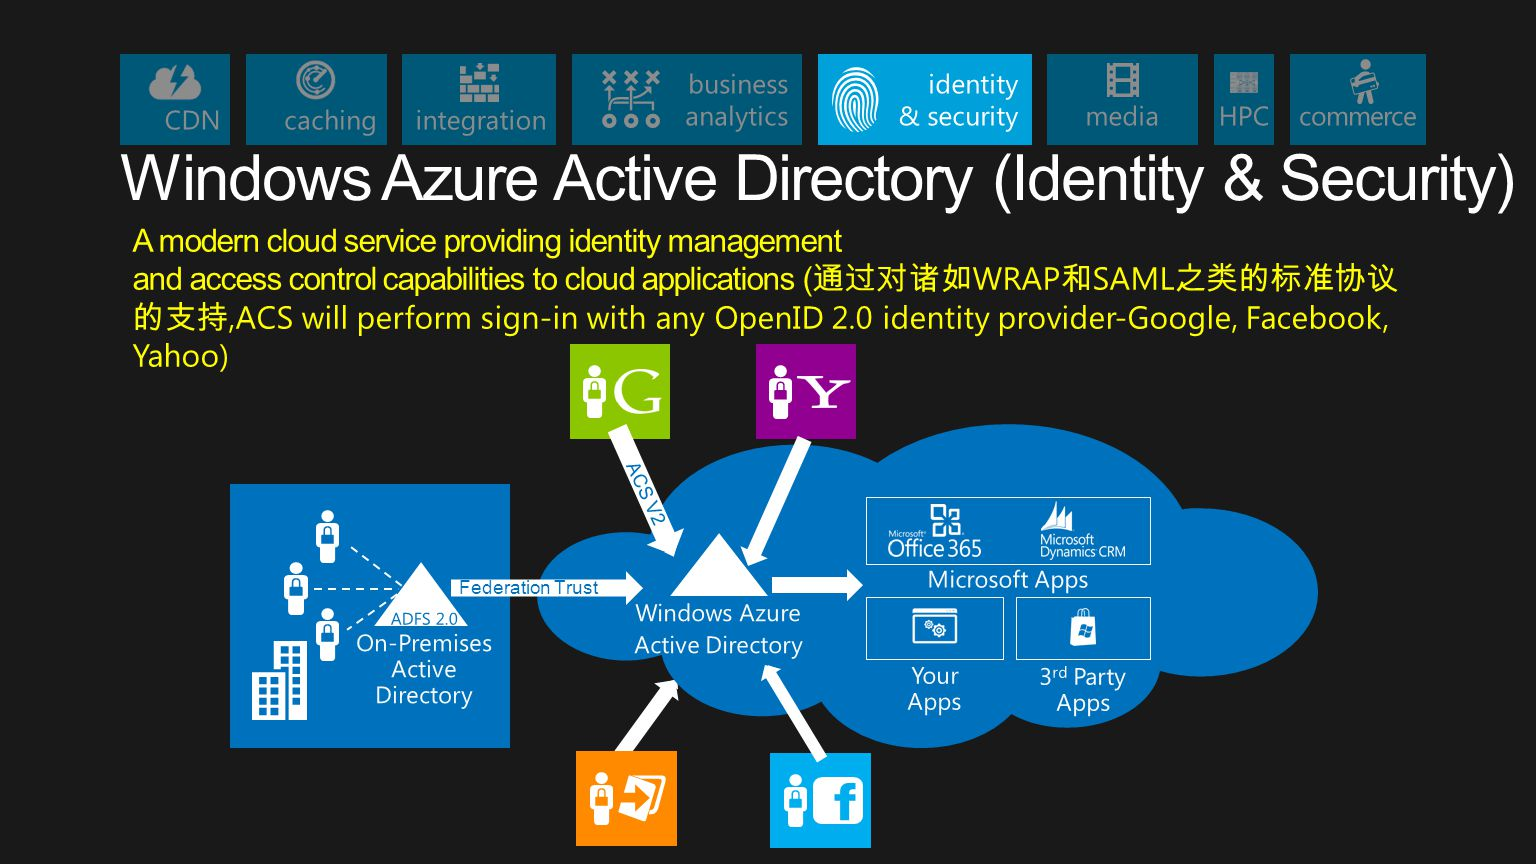 Windows Azure Active Directory (Identity & Security)